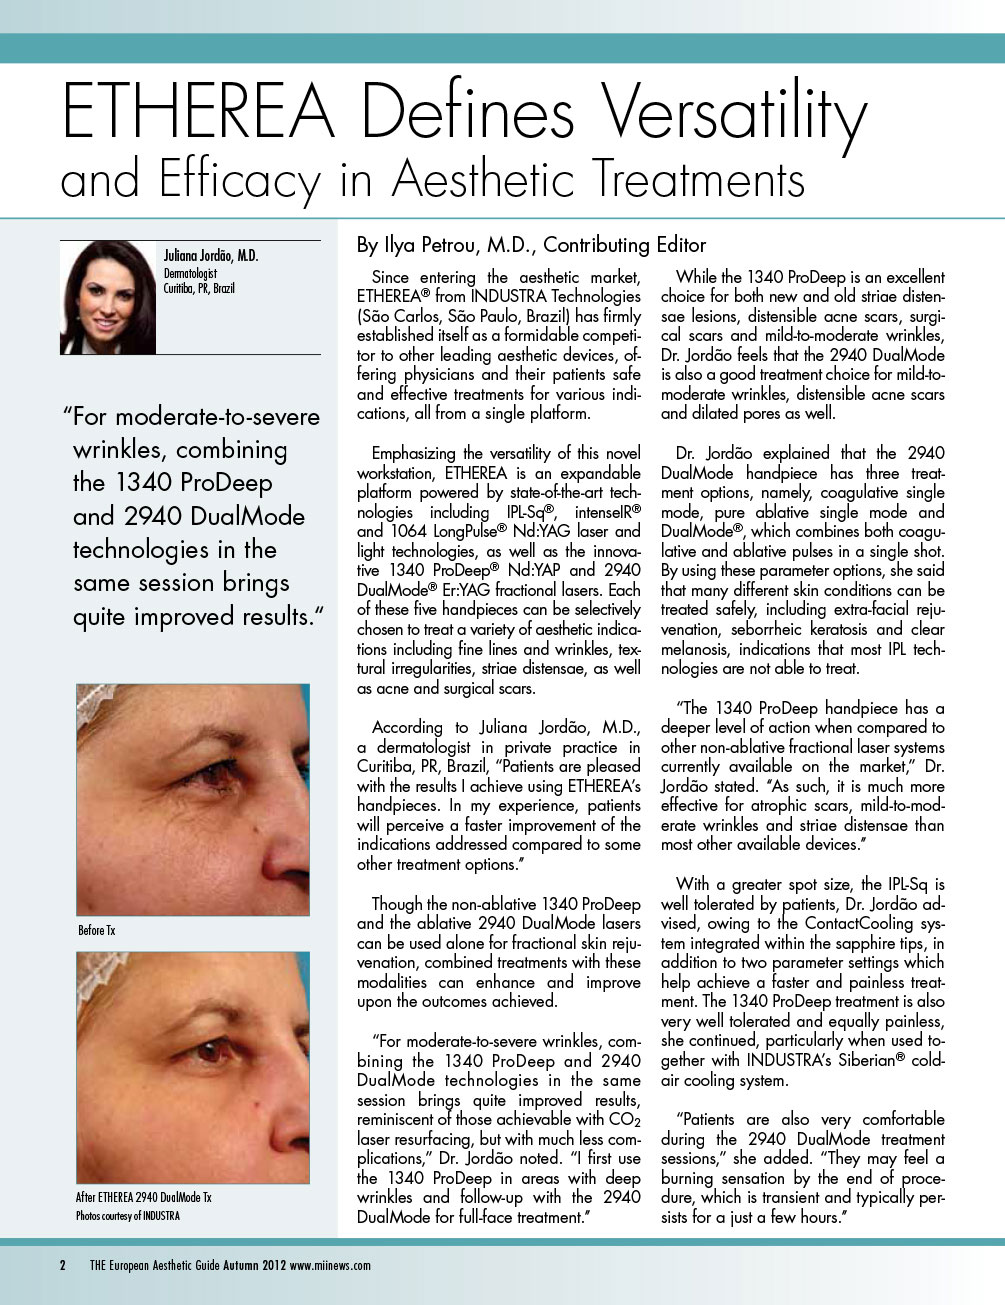 etherea® defines versatility and efficacy in aesthetic treatments